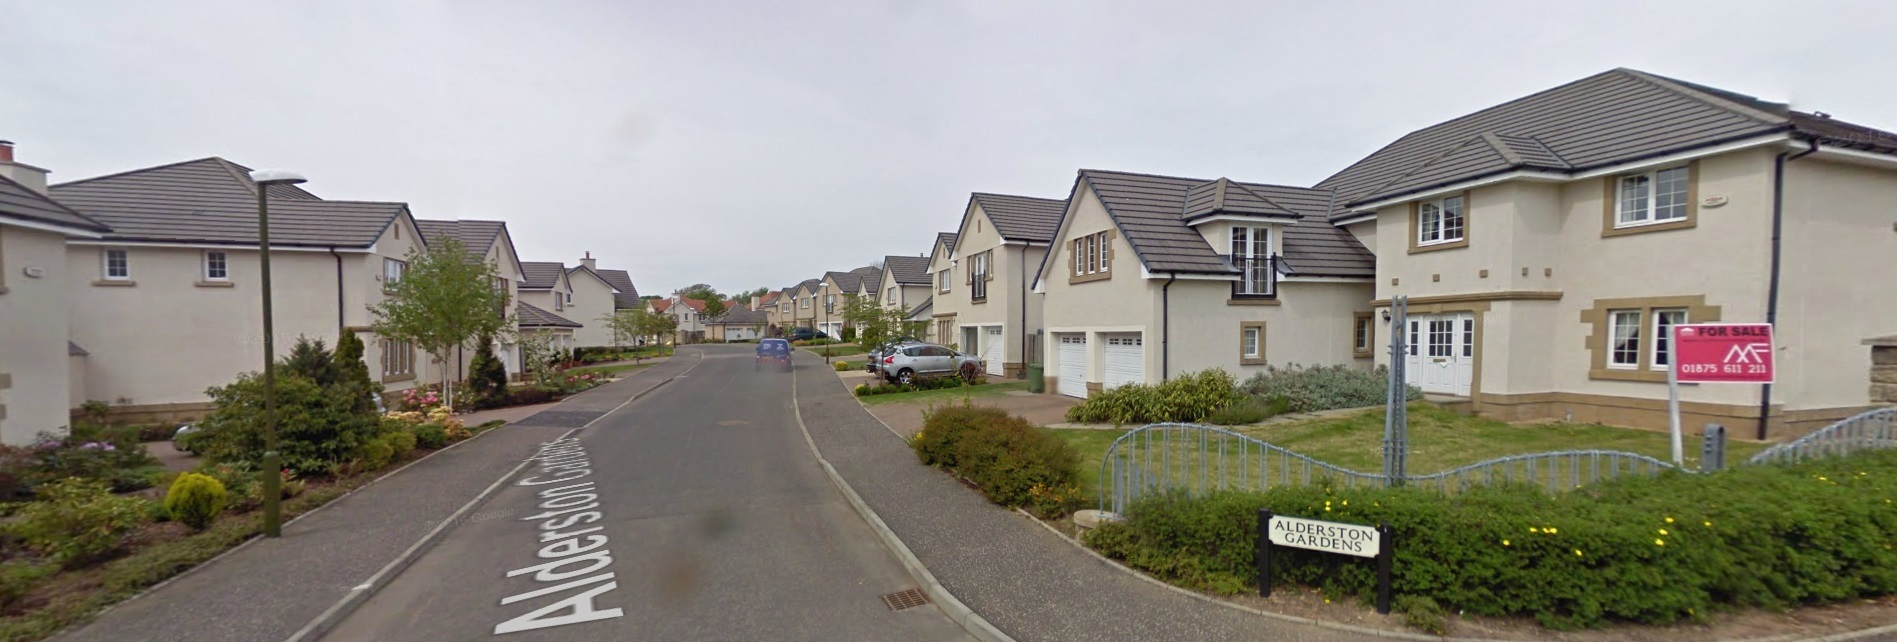 Break-ins took place in Alderston Gardens, Haddington, and Tranent's Bankpark Crescent